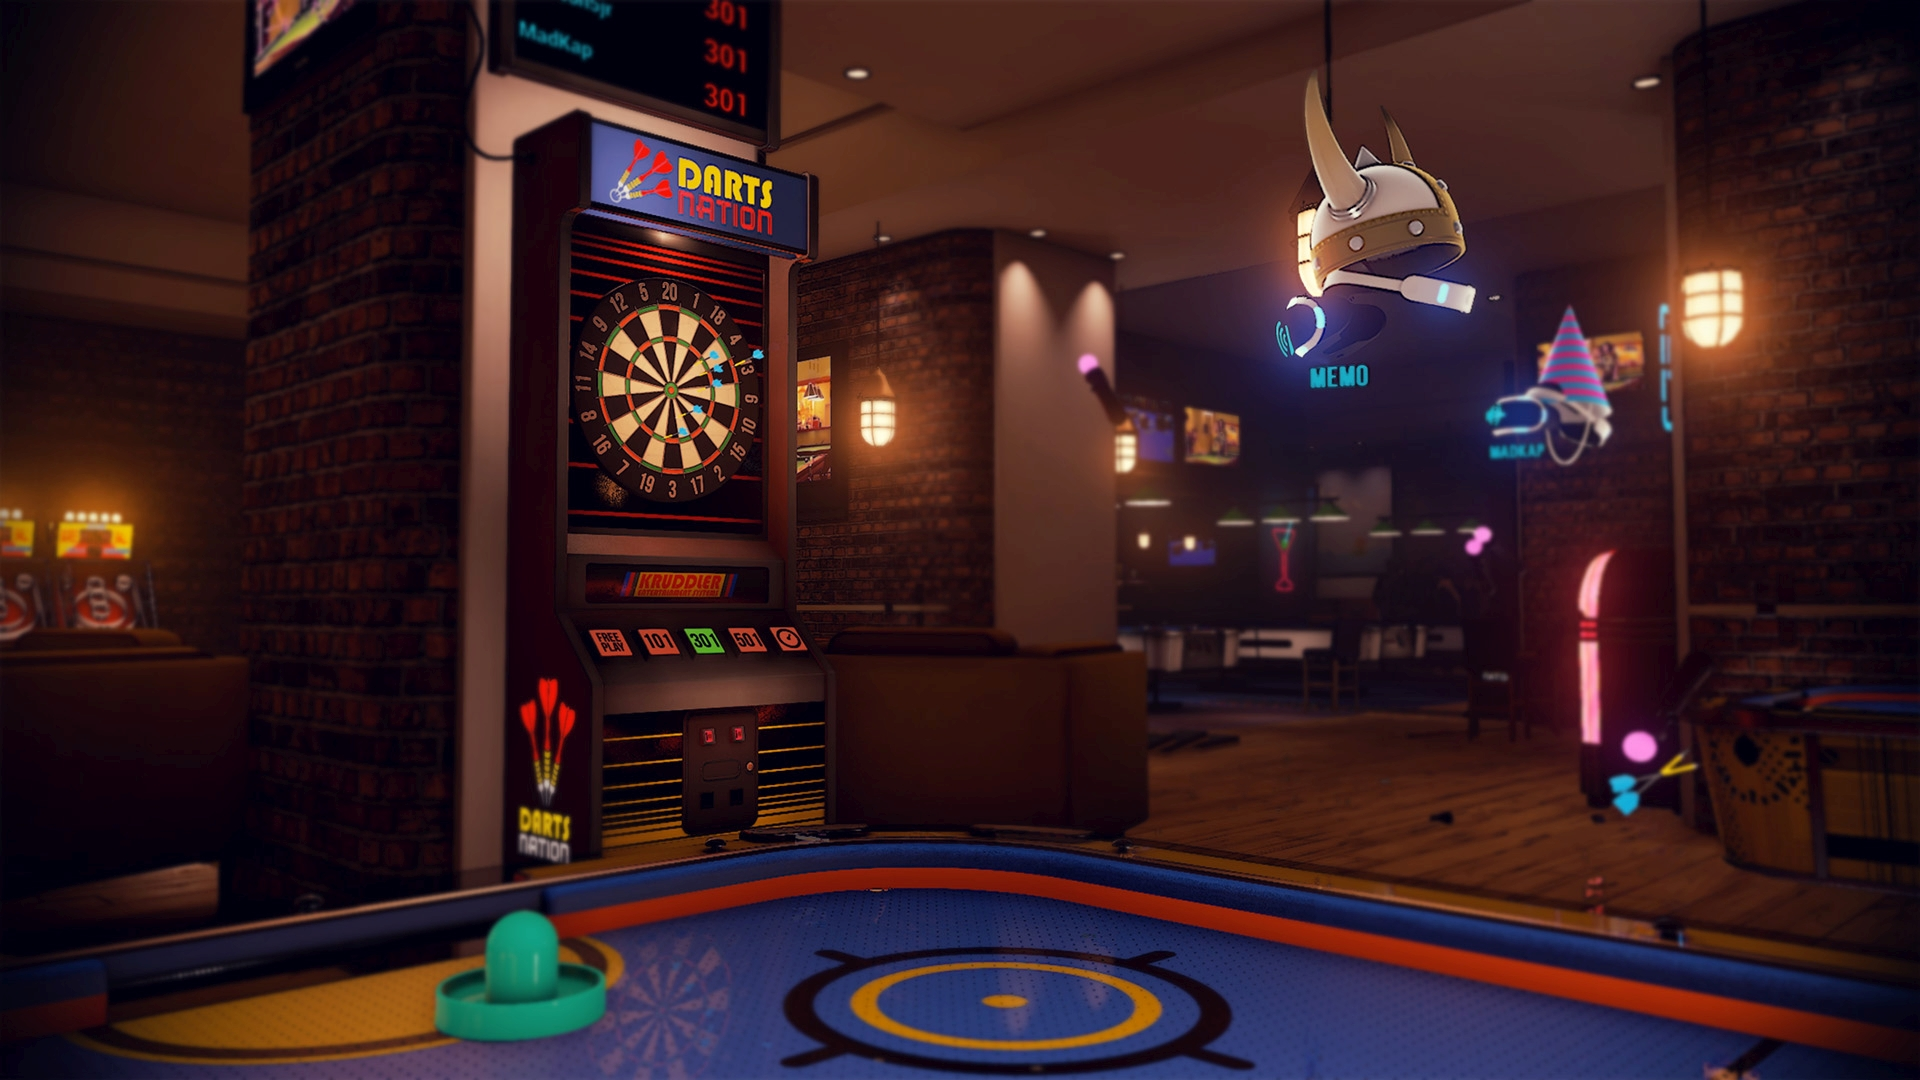 sports-bar-vr-gameplay-nat-games-test-review